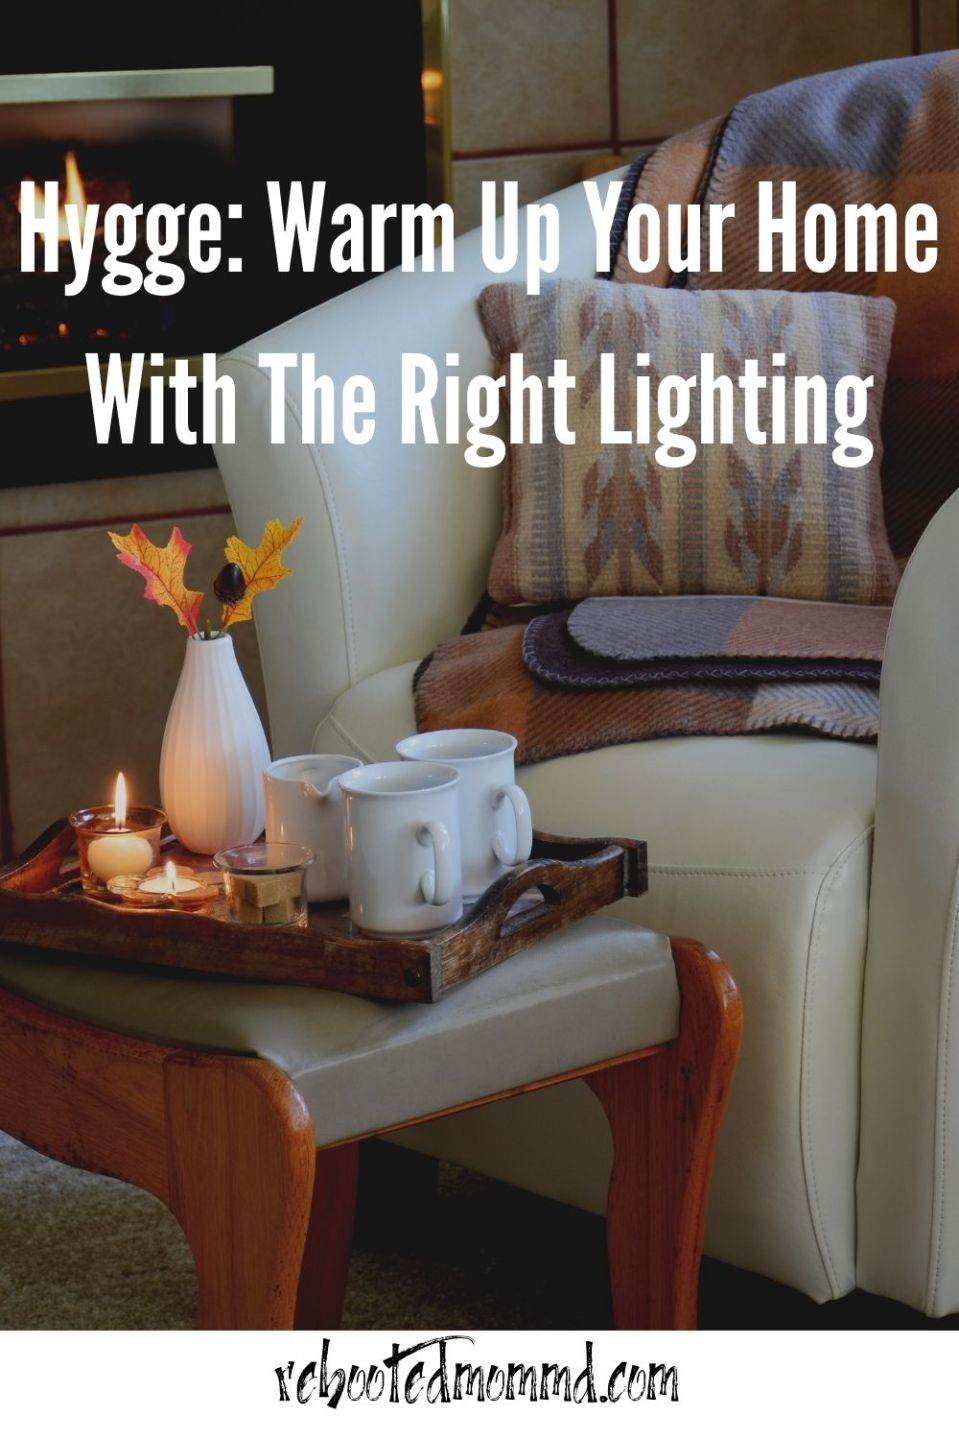 Hygge: Warm Up Your Home With The Right Lighting